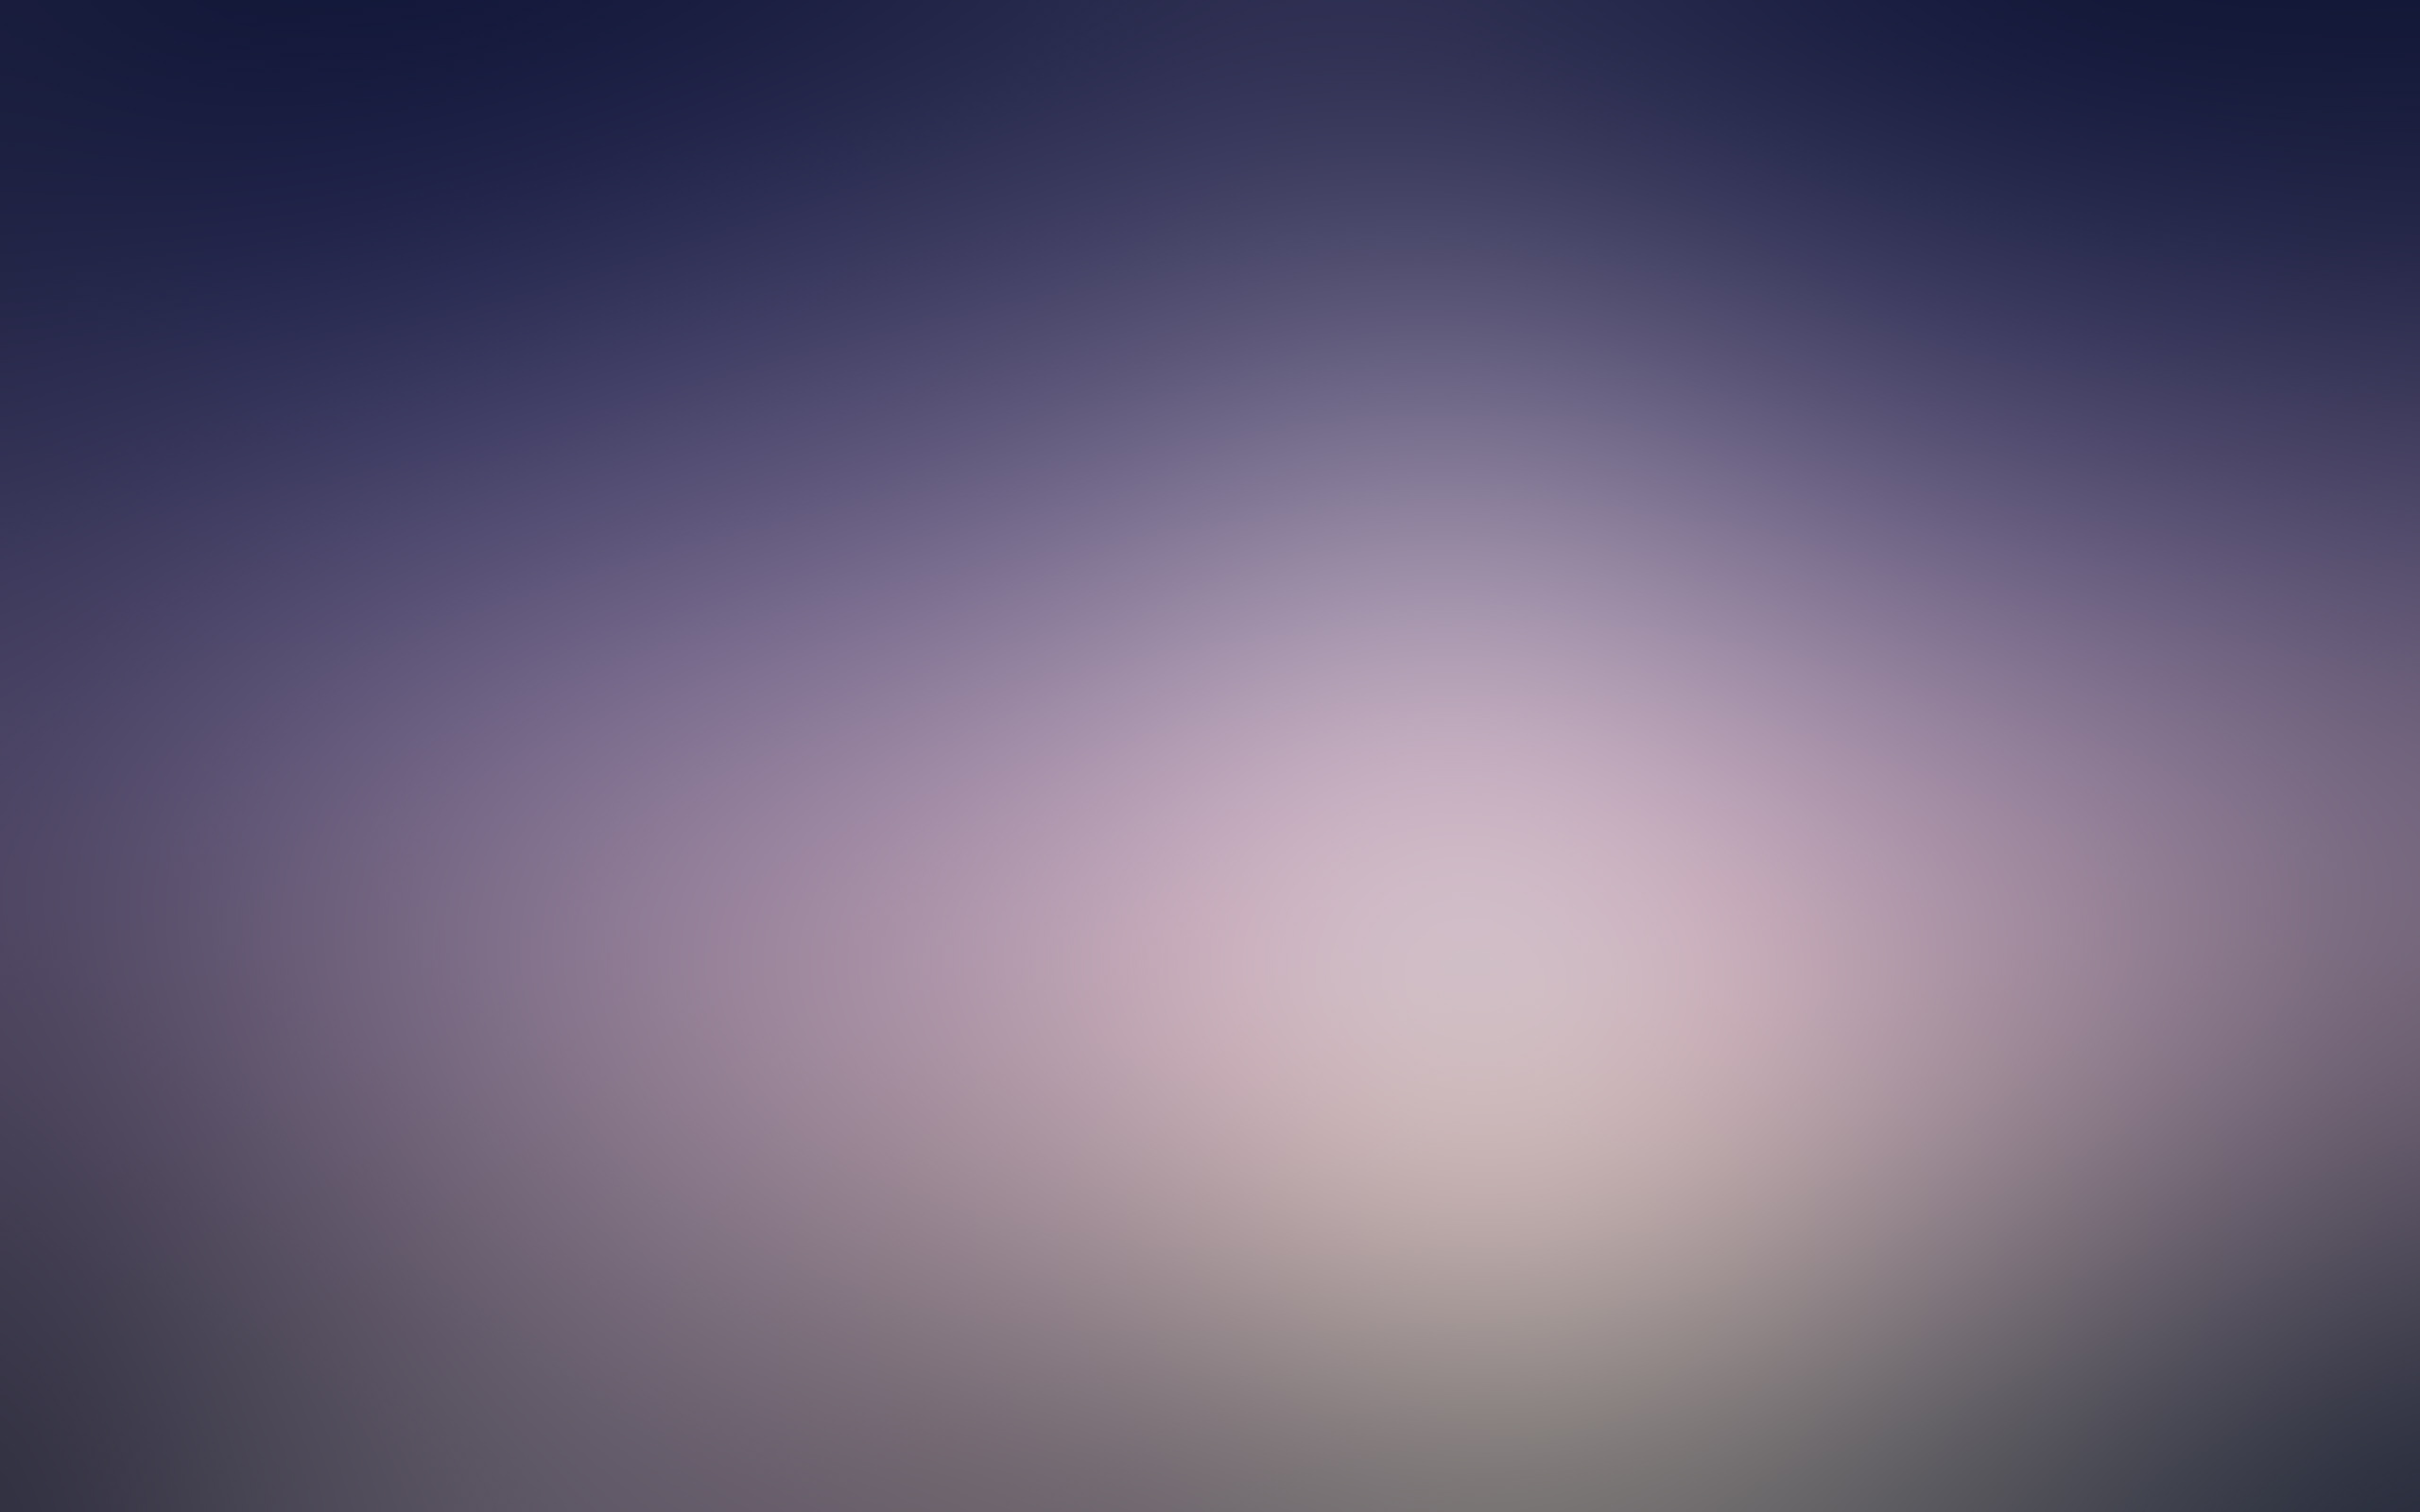 Smooth Blue Gradient Wallpapers Smooth Blue Gradient HD Wallpapers Download Free Images Wallpaper [1000image.com]